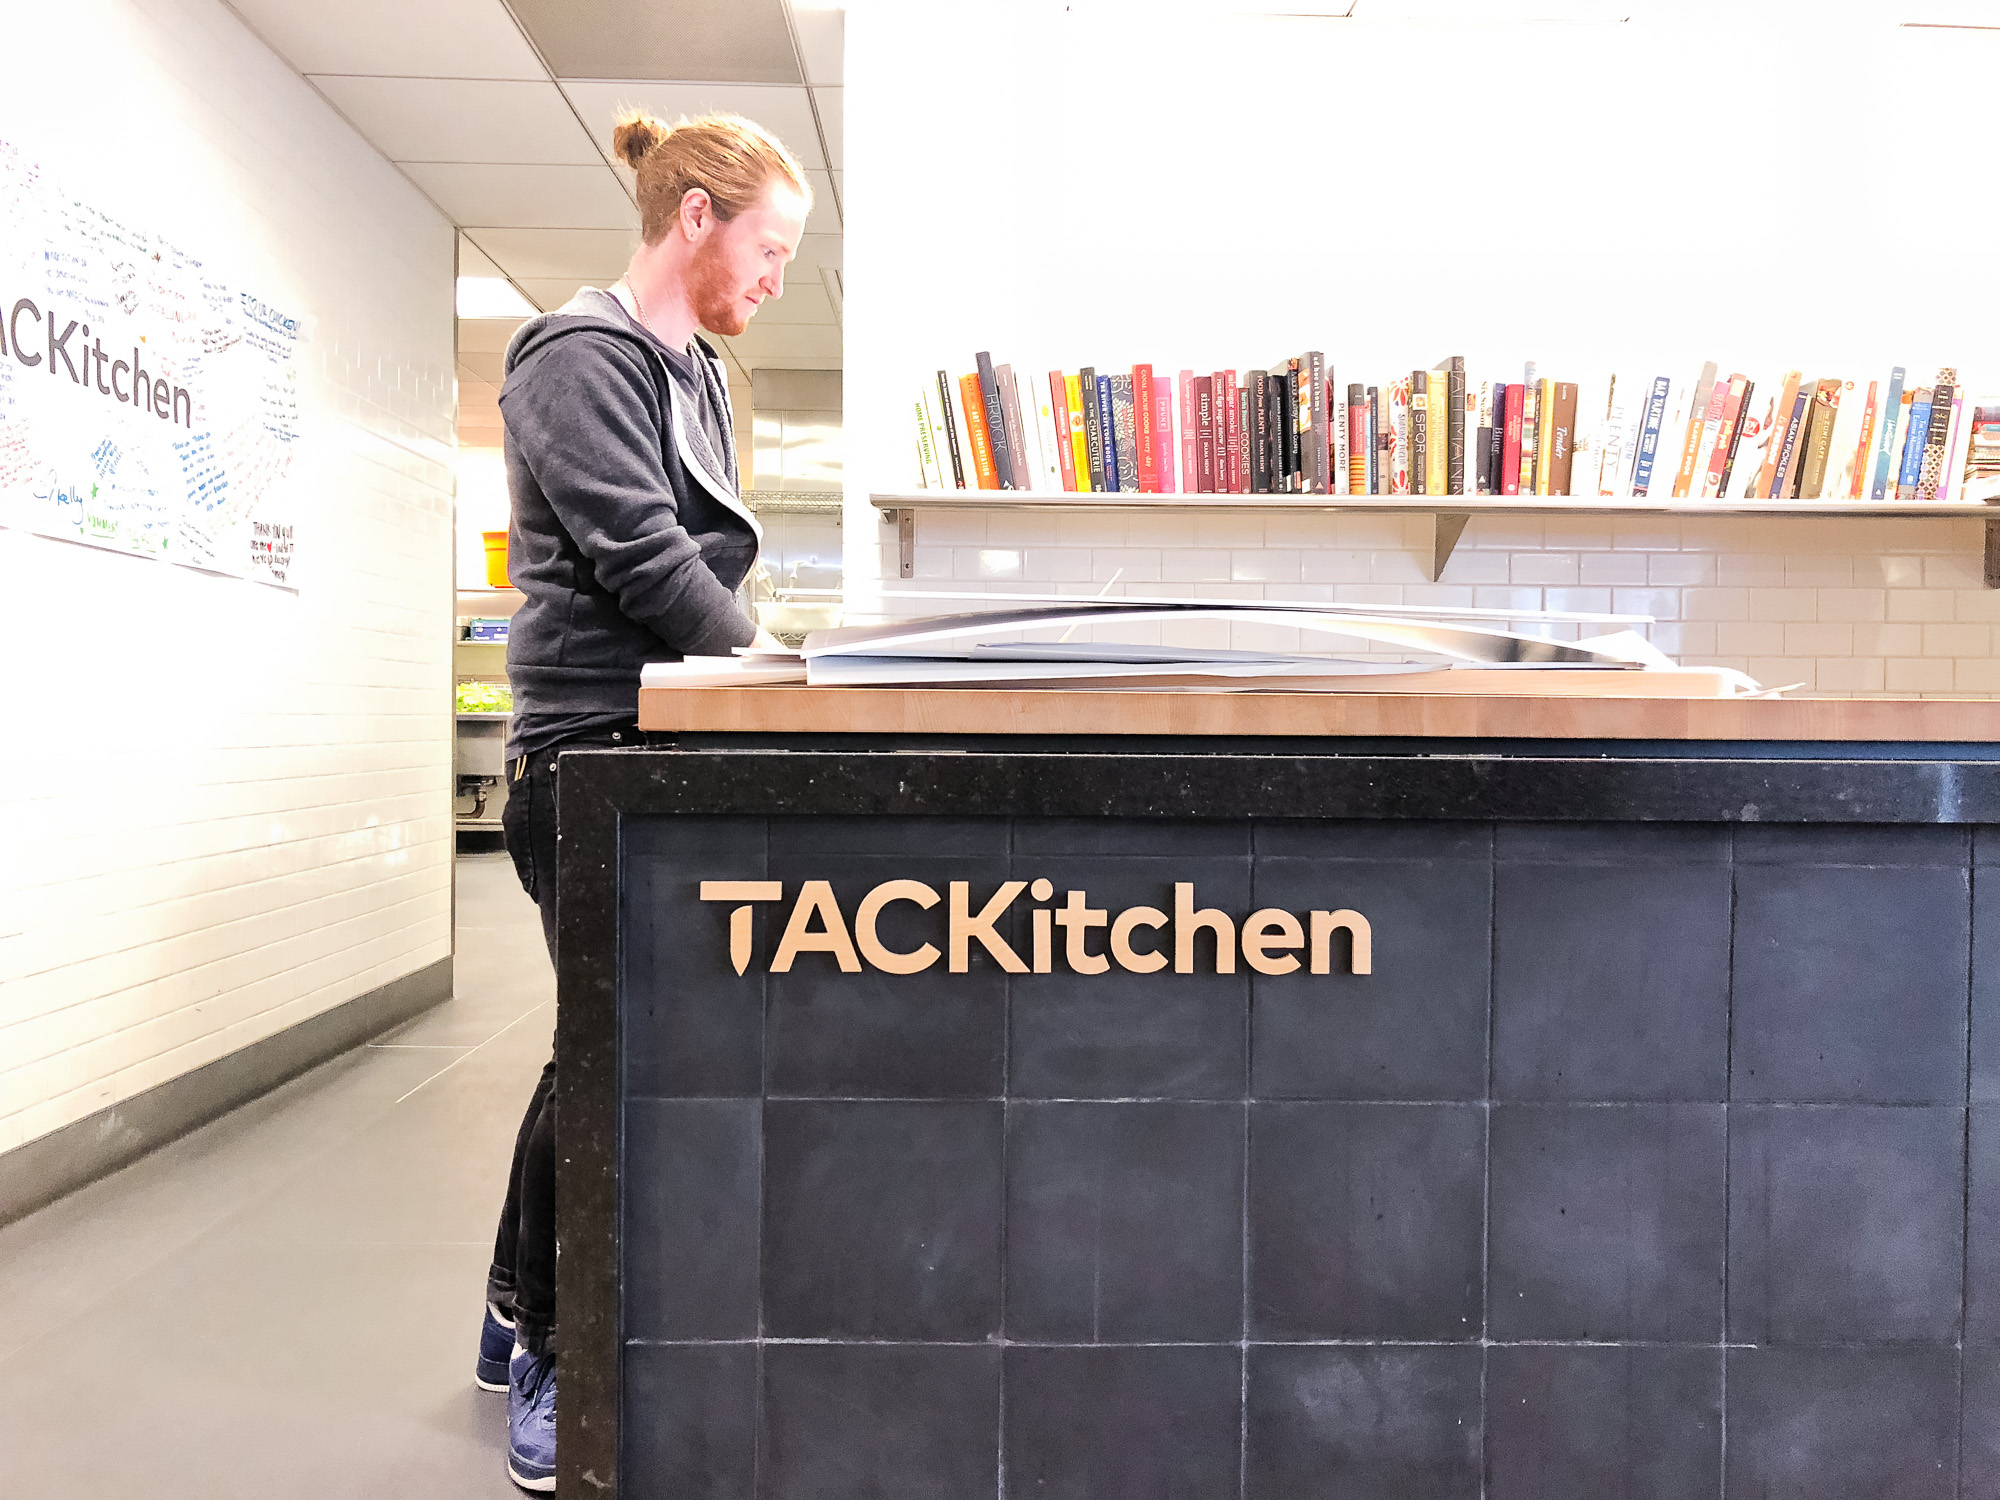 Wood letters on front counter at the cafeteria/kitchen of Thumbtack, an online service that matches customers with local professionals.